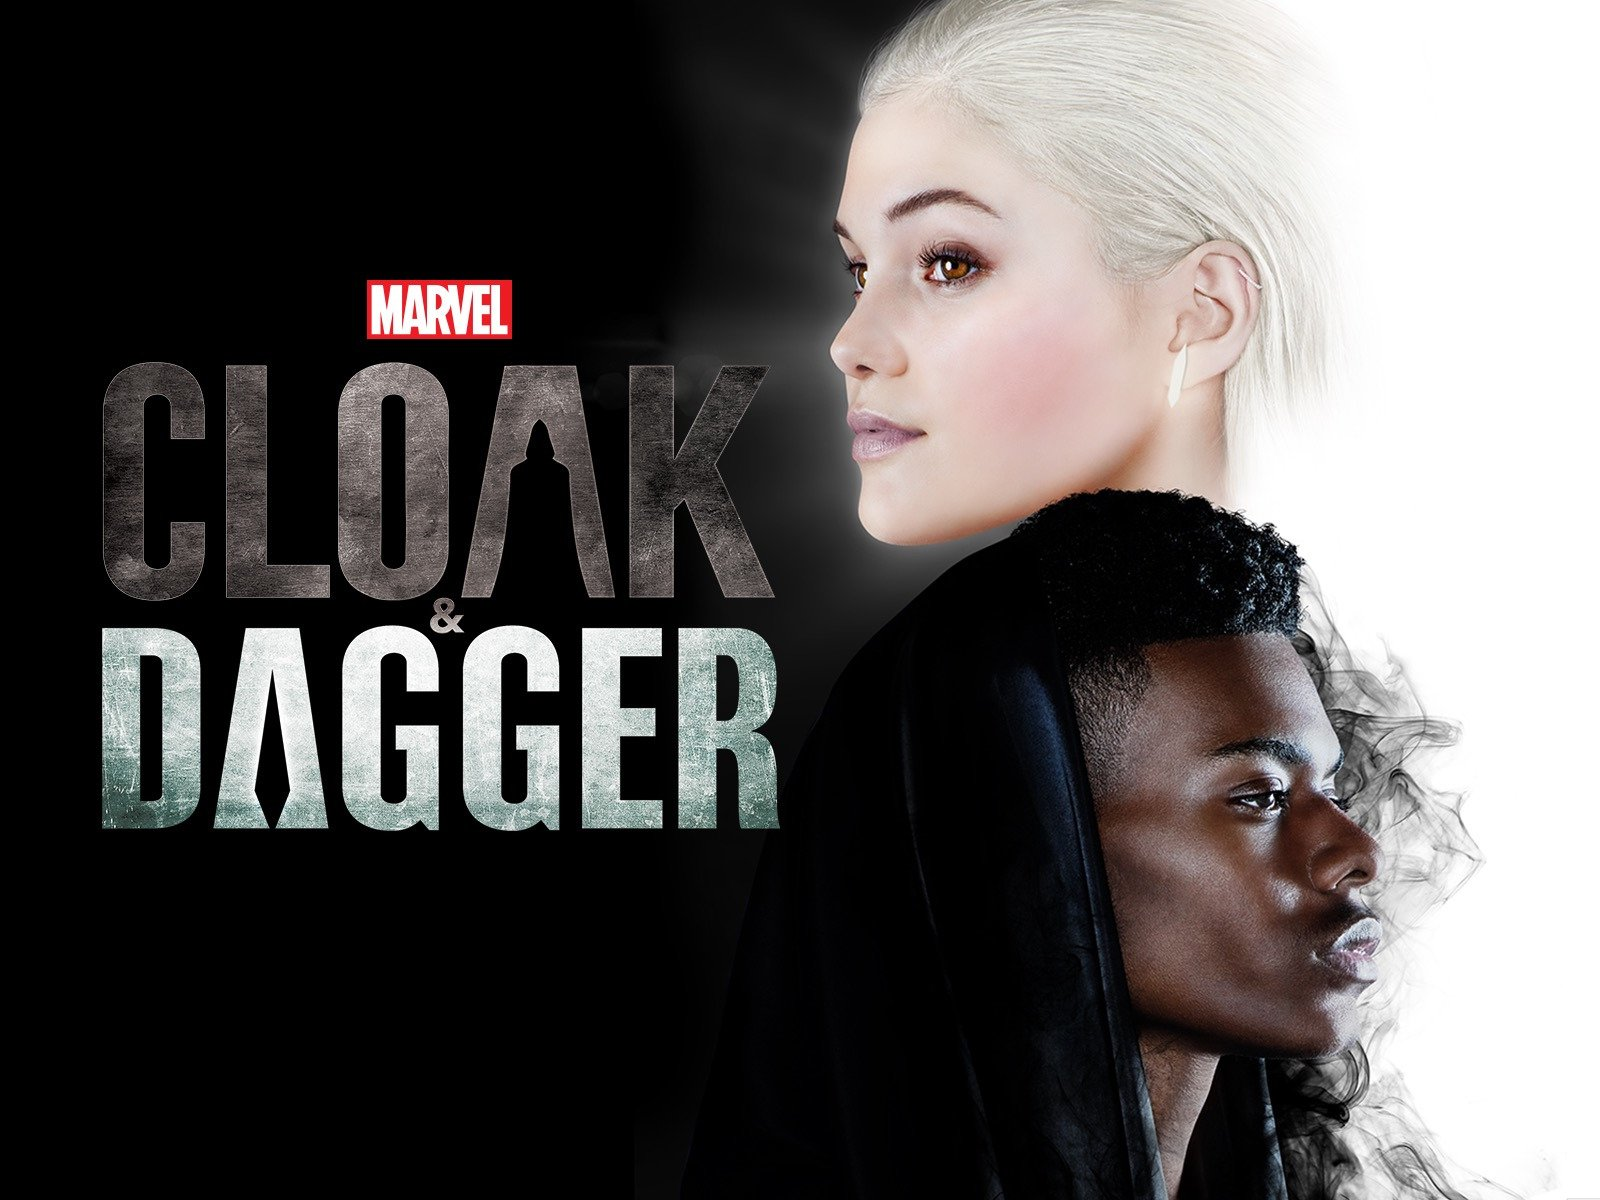 Why Cloak Dagger Is Marvels Best Tv Show Yet Arts Culture